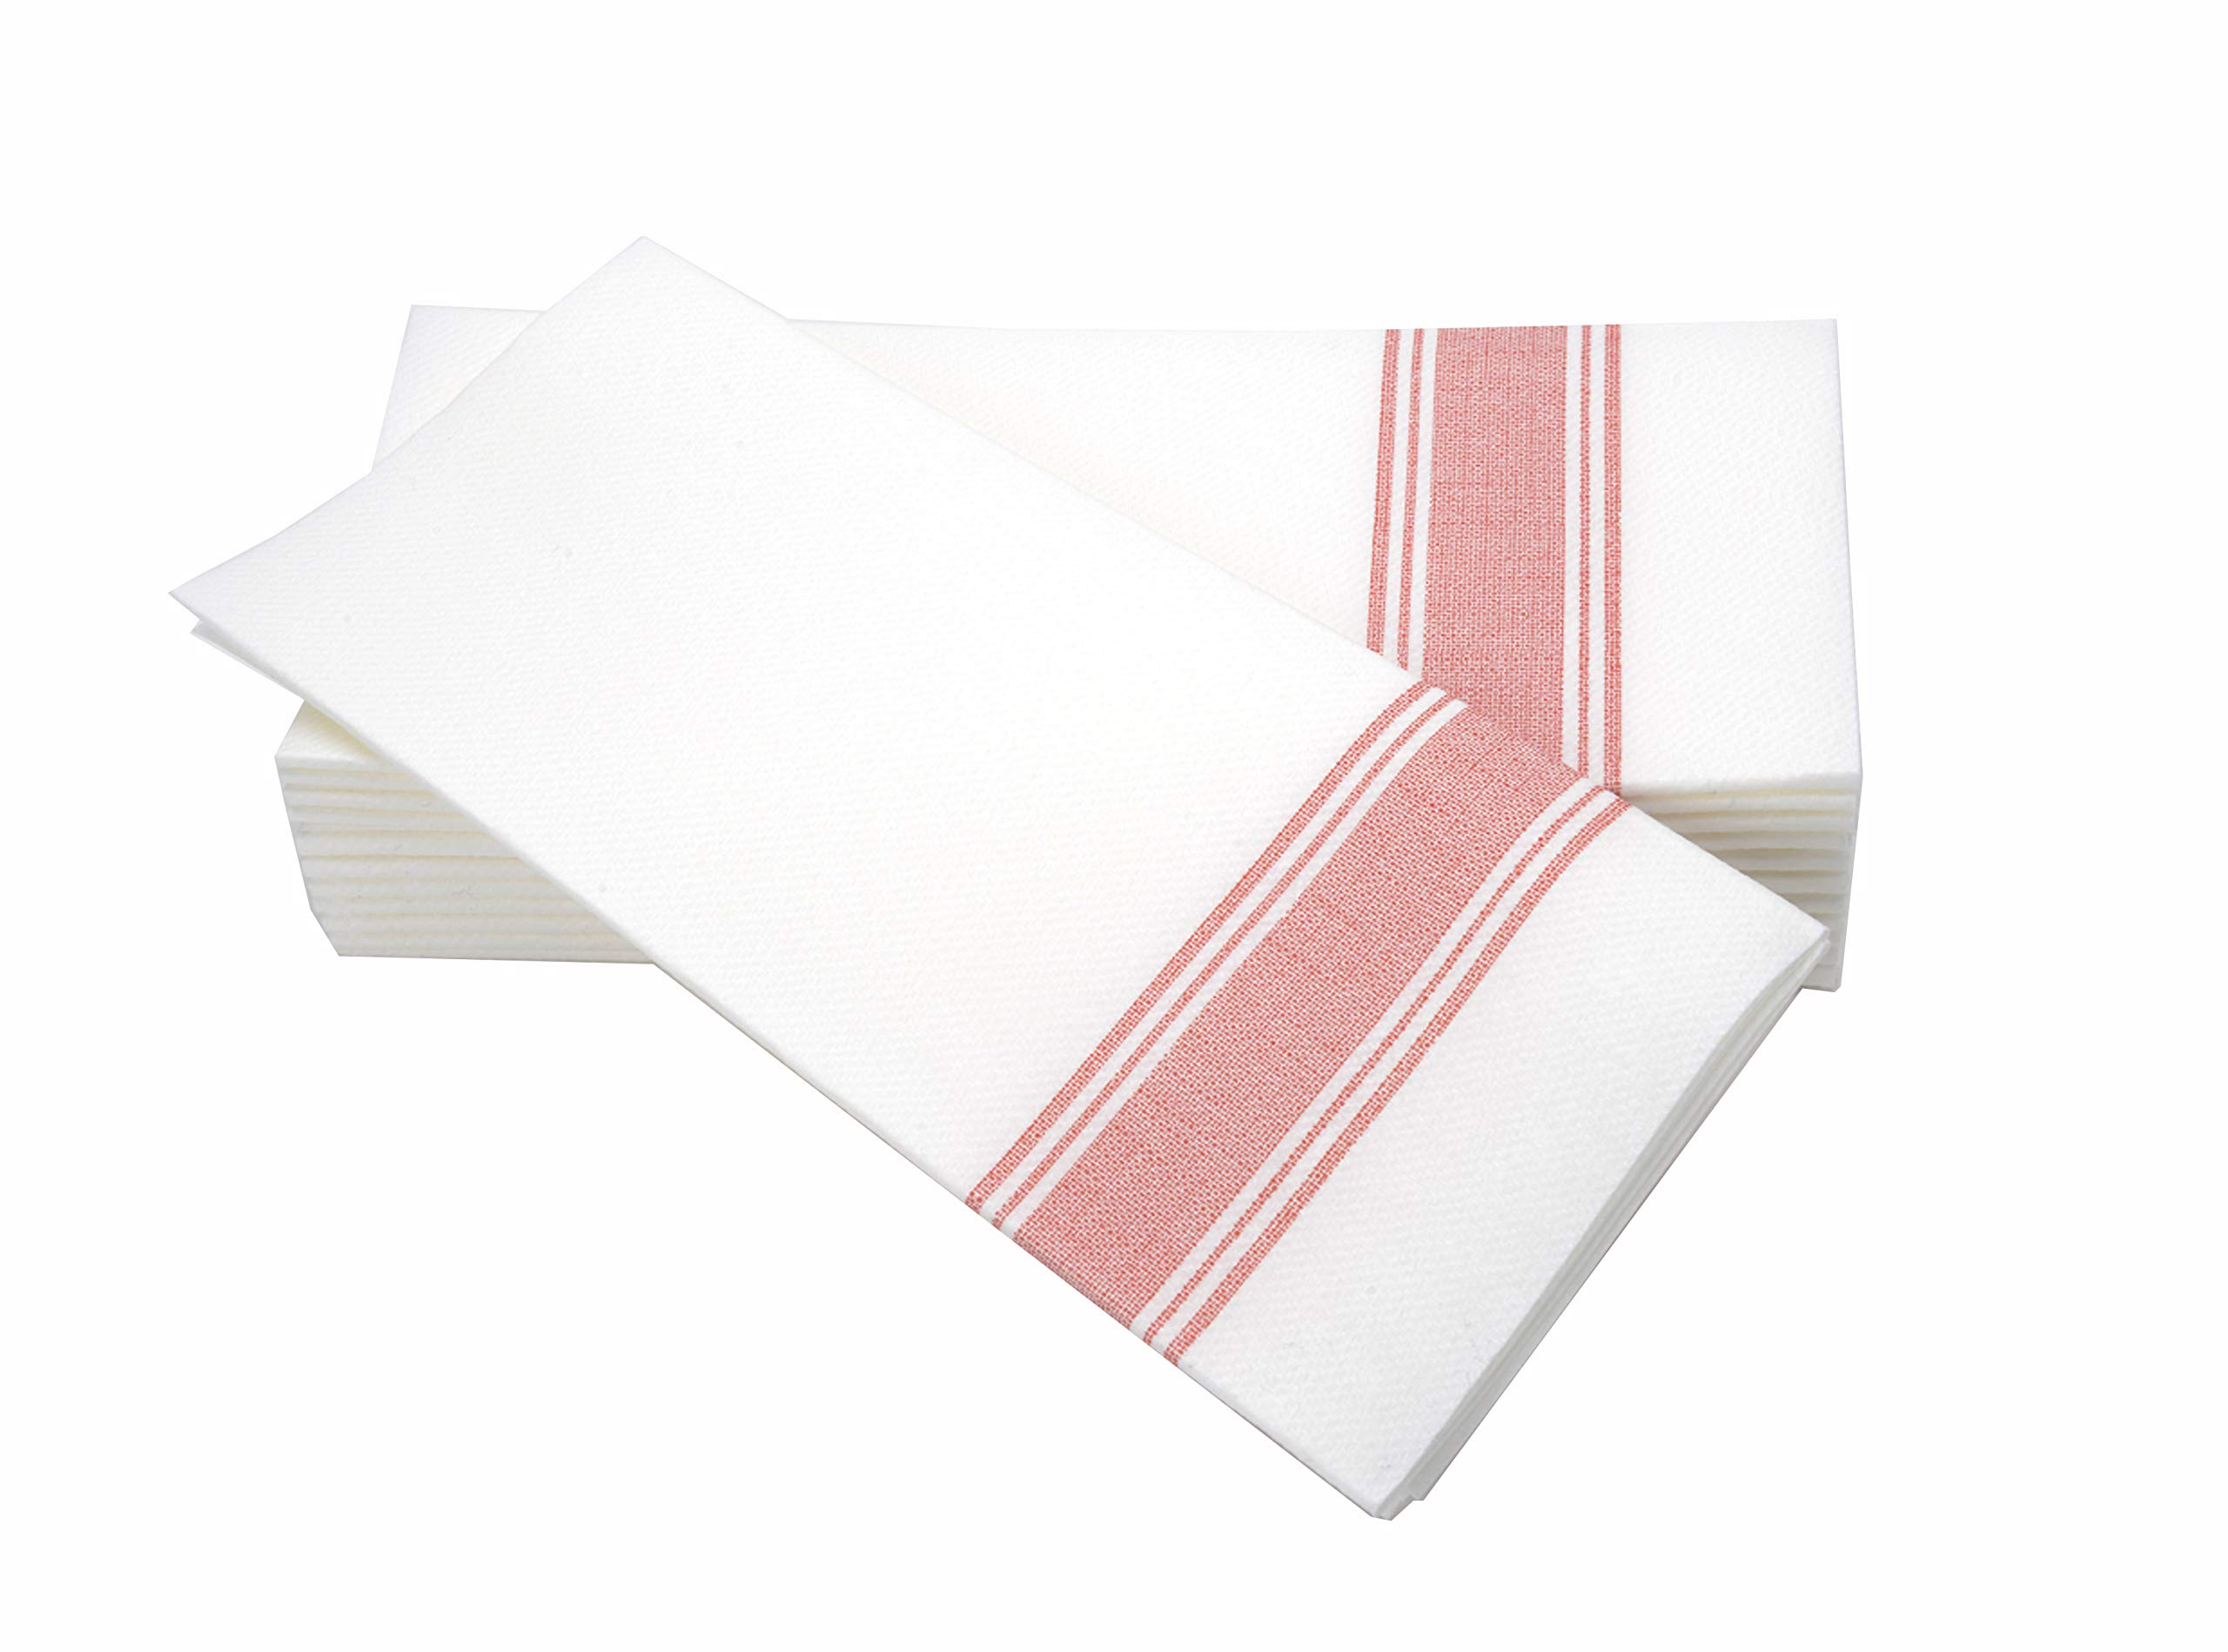 """Simulinen Dinner Napkins -Red Stripe Bistro- Decorative Cloth Like & Disposable Large Napkins - Soft, Absorbent & Durable (19""""x17"""" - Box of 60)"""